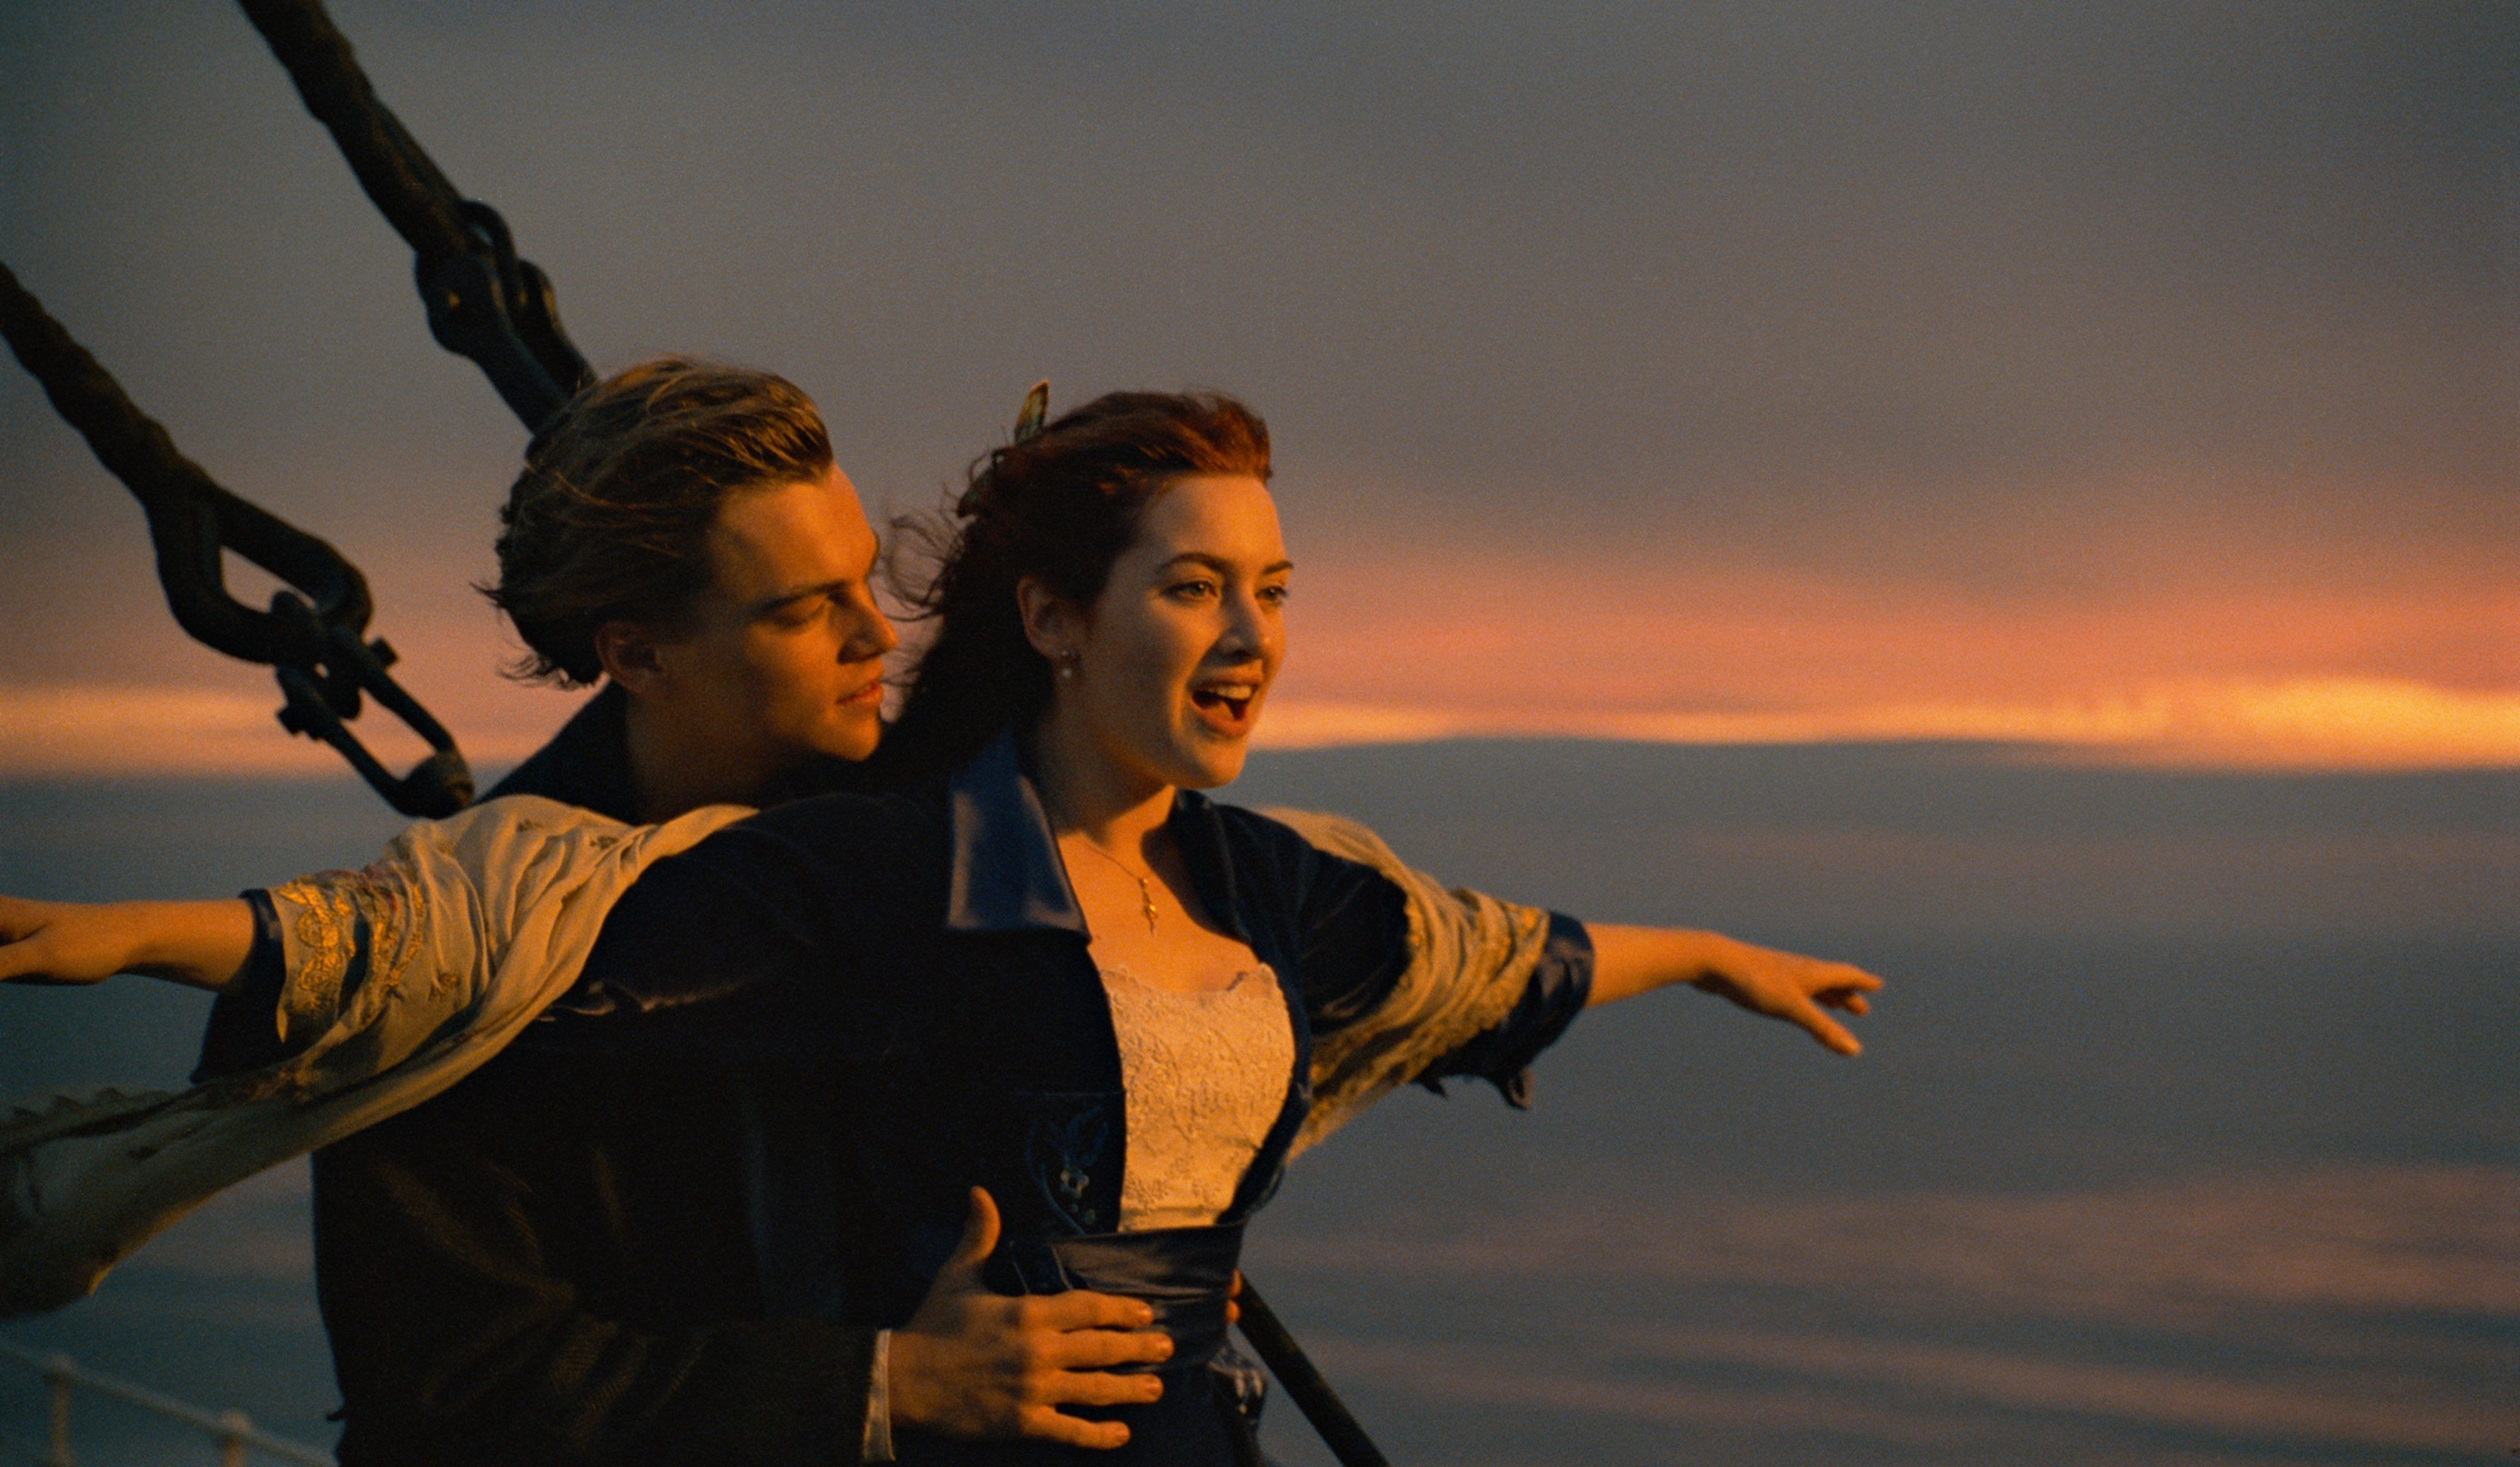 Can You Finish These Iconic Lines From Titanic? - Fame10